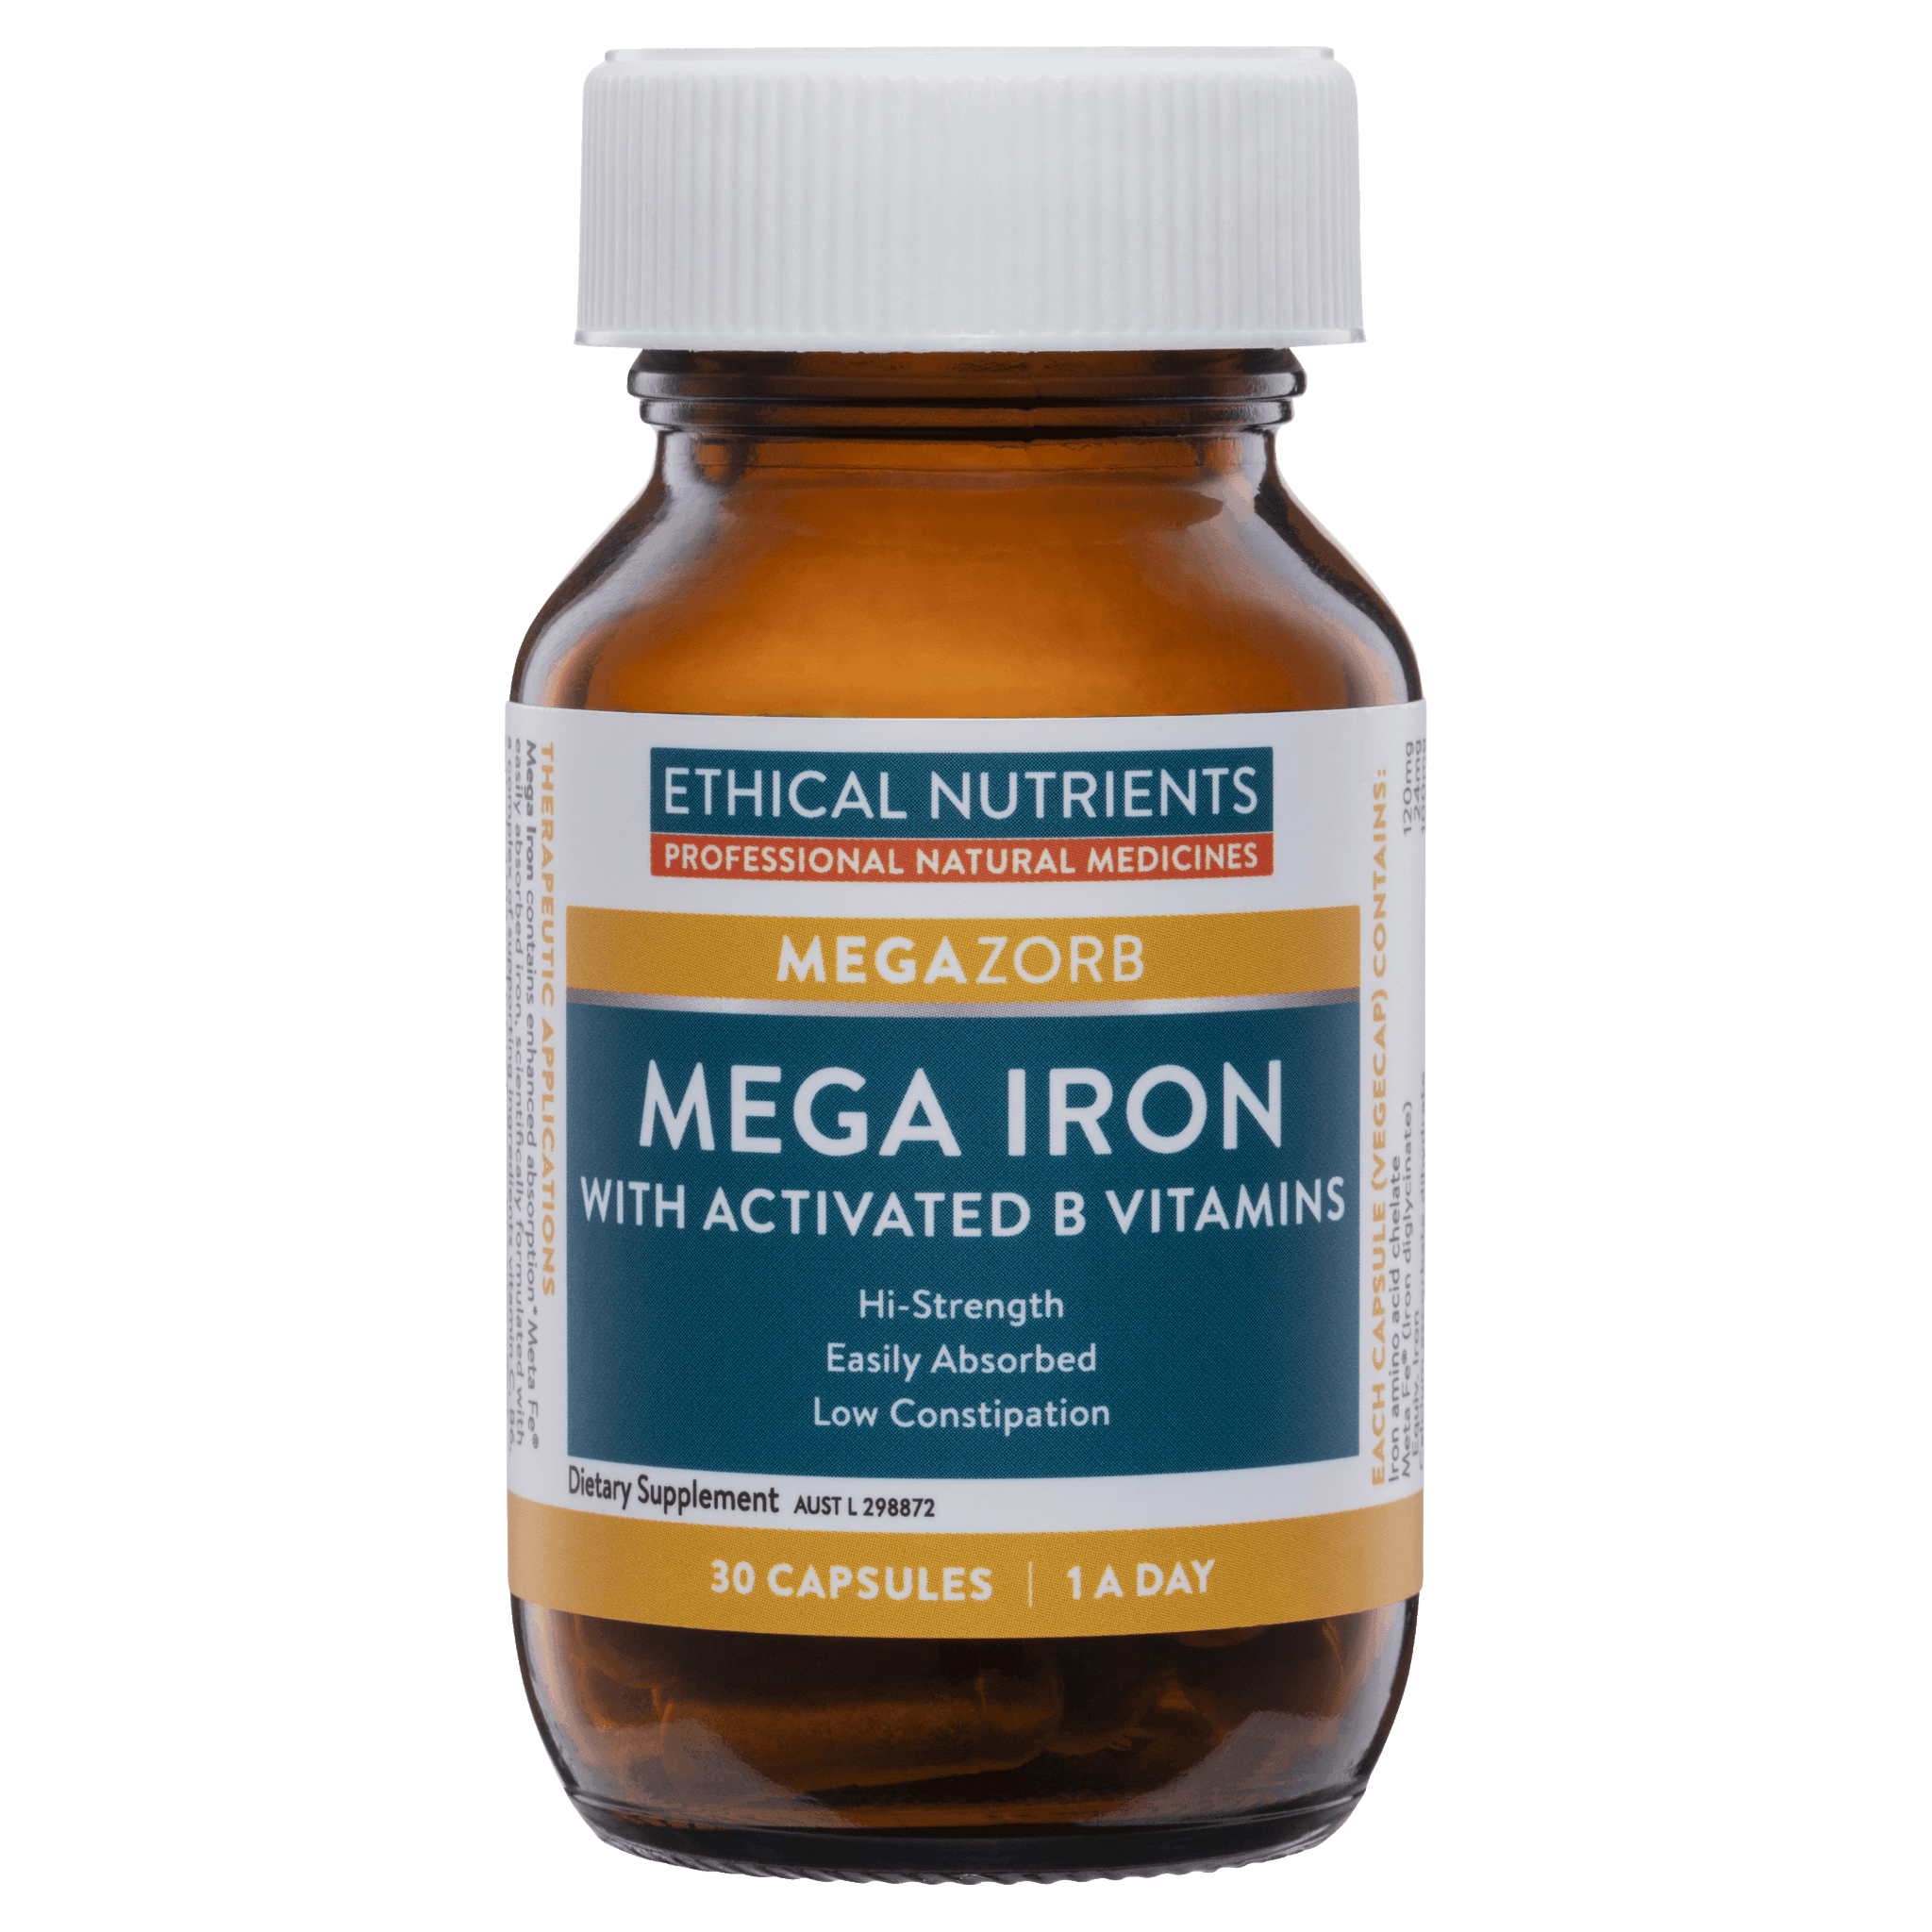 Ethical Nutrients Mega Iron with Activated B's